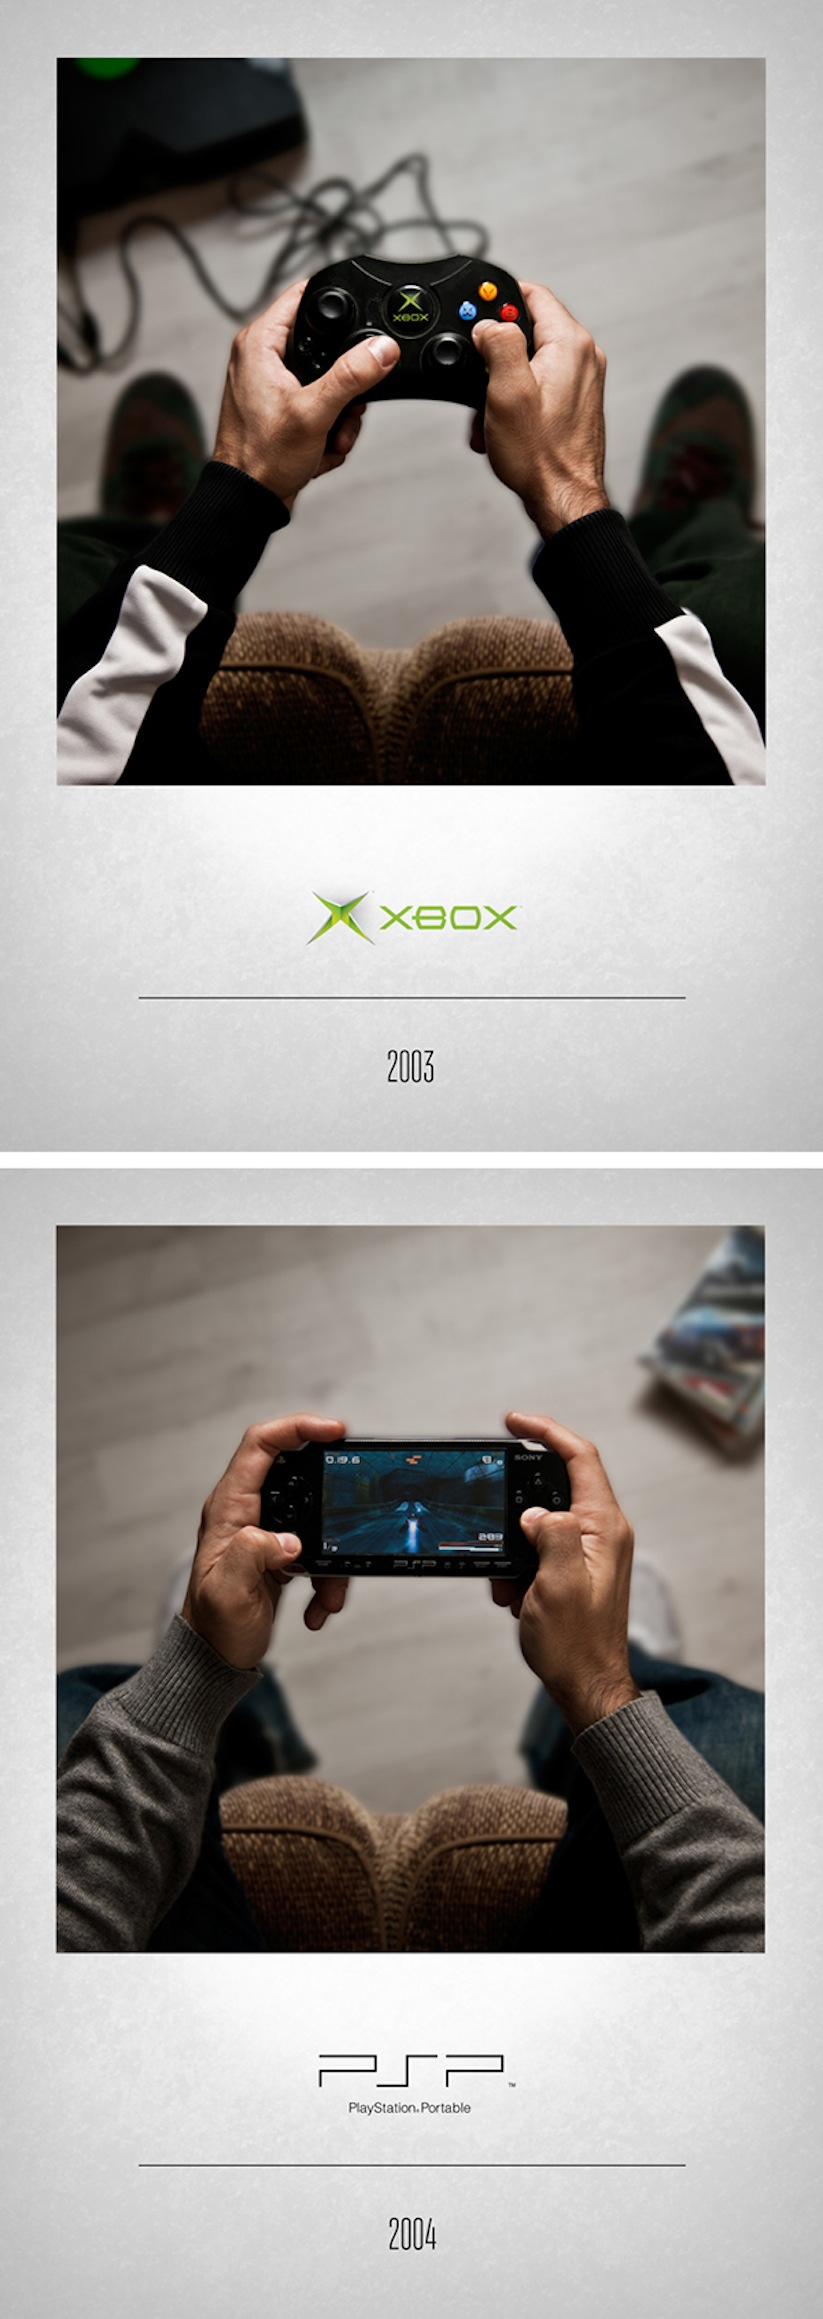 video games history_javier laspiur_9